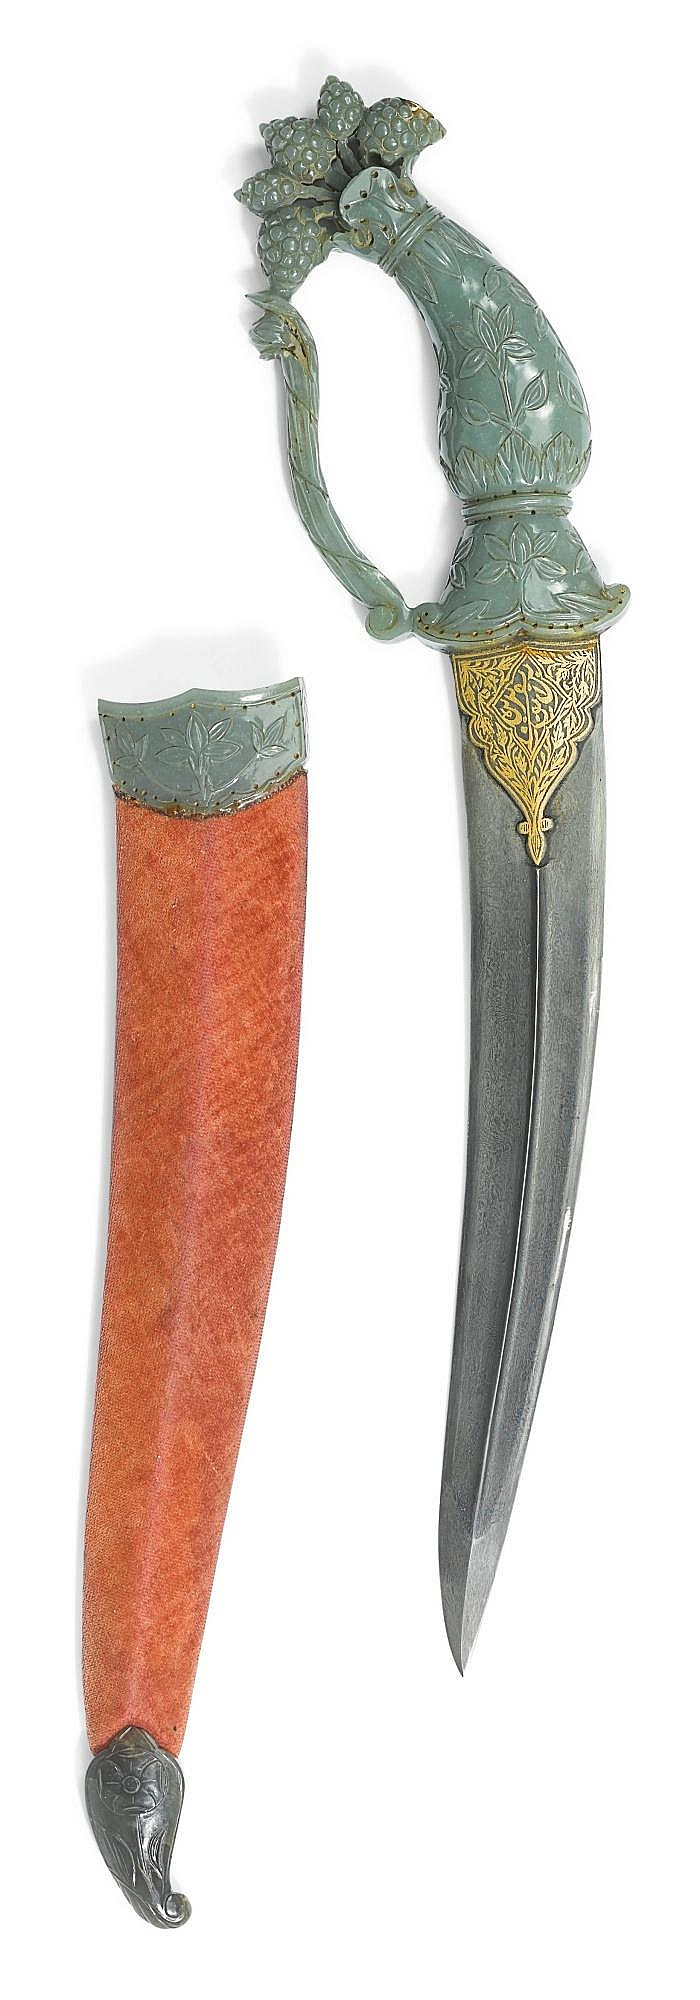 A MUGHAL JADE-HILTED DAGGER (KHANJAR) WITH SCABBARD, INDIA, 18TH CENTURY |